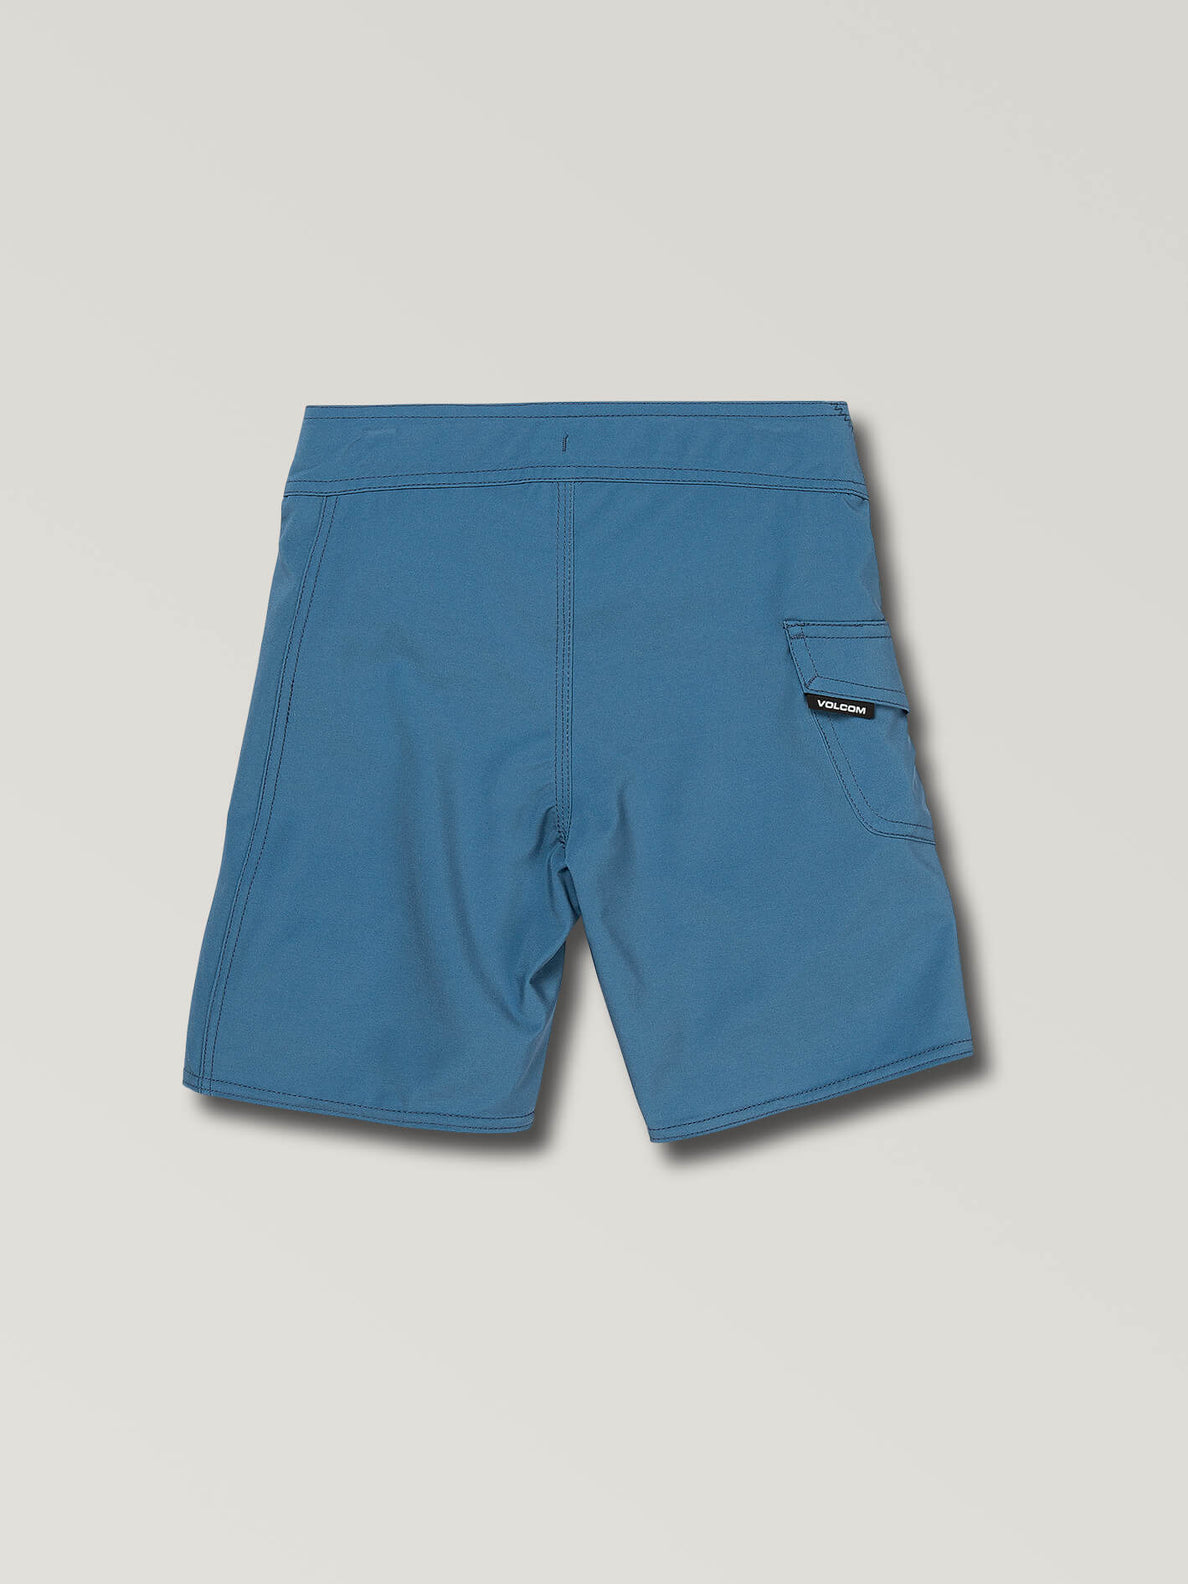 Little Boys Deadly Stones Mod Boardshorts In Airforce Blue, Back View